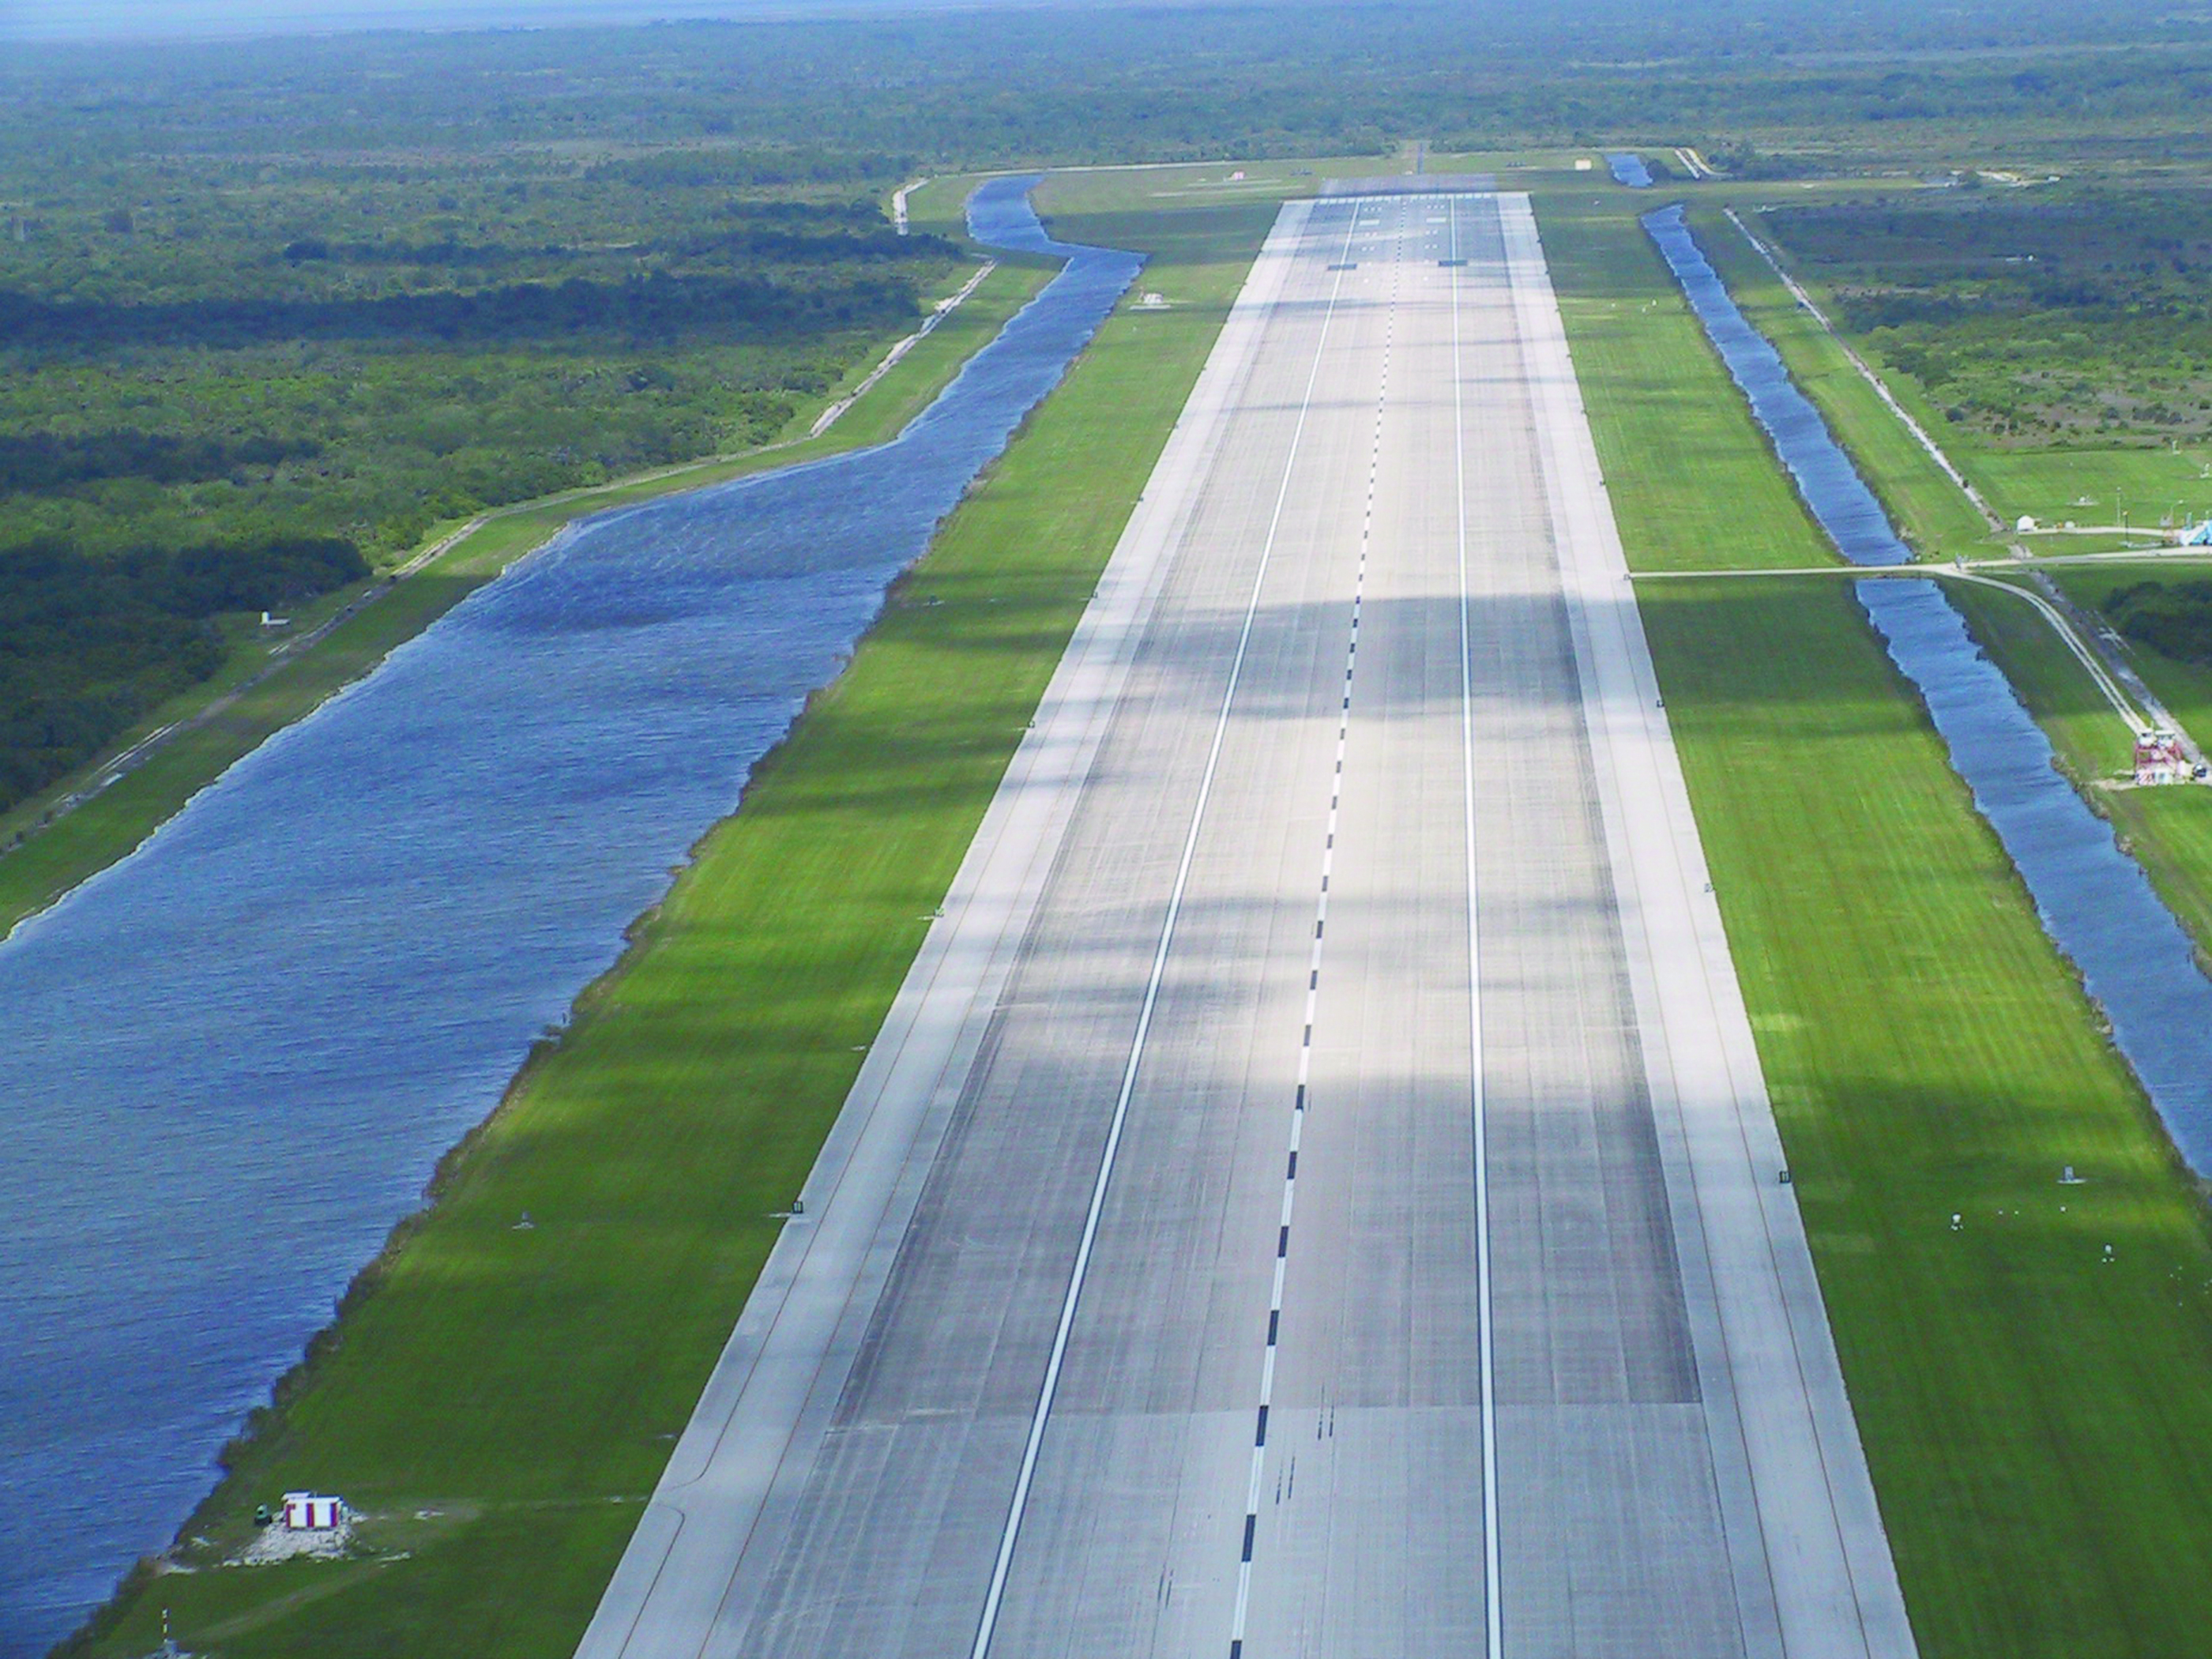 space shuttle runway - photo #2